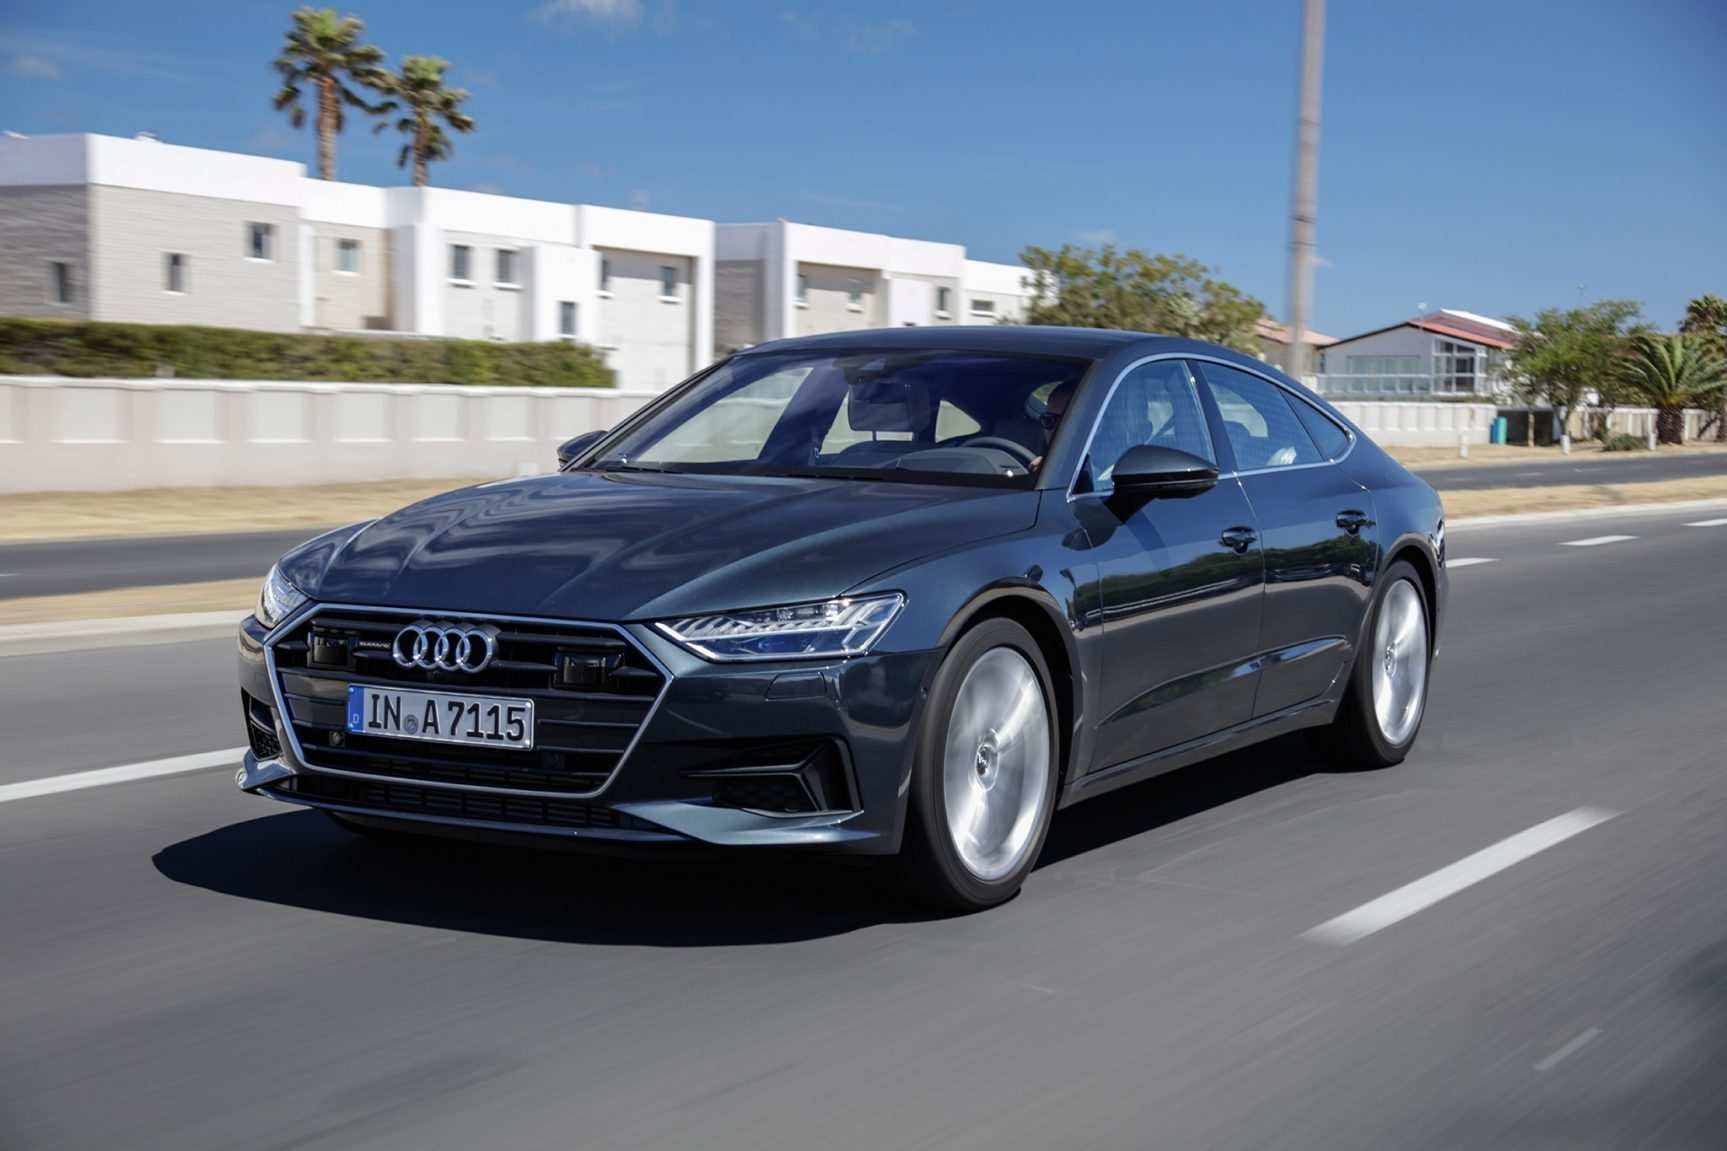 34 Concept of Best New S7 Audi 2019 Interior Review for Best New S7 Audi 2019 Interior